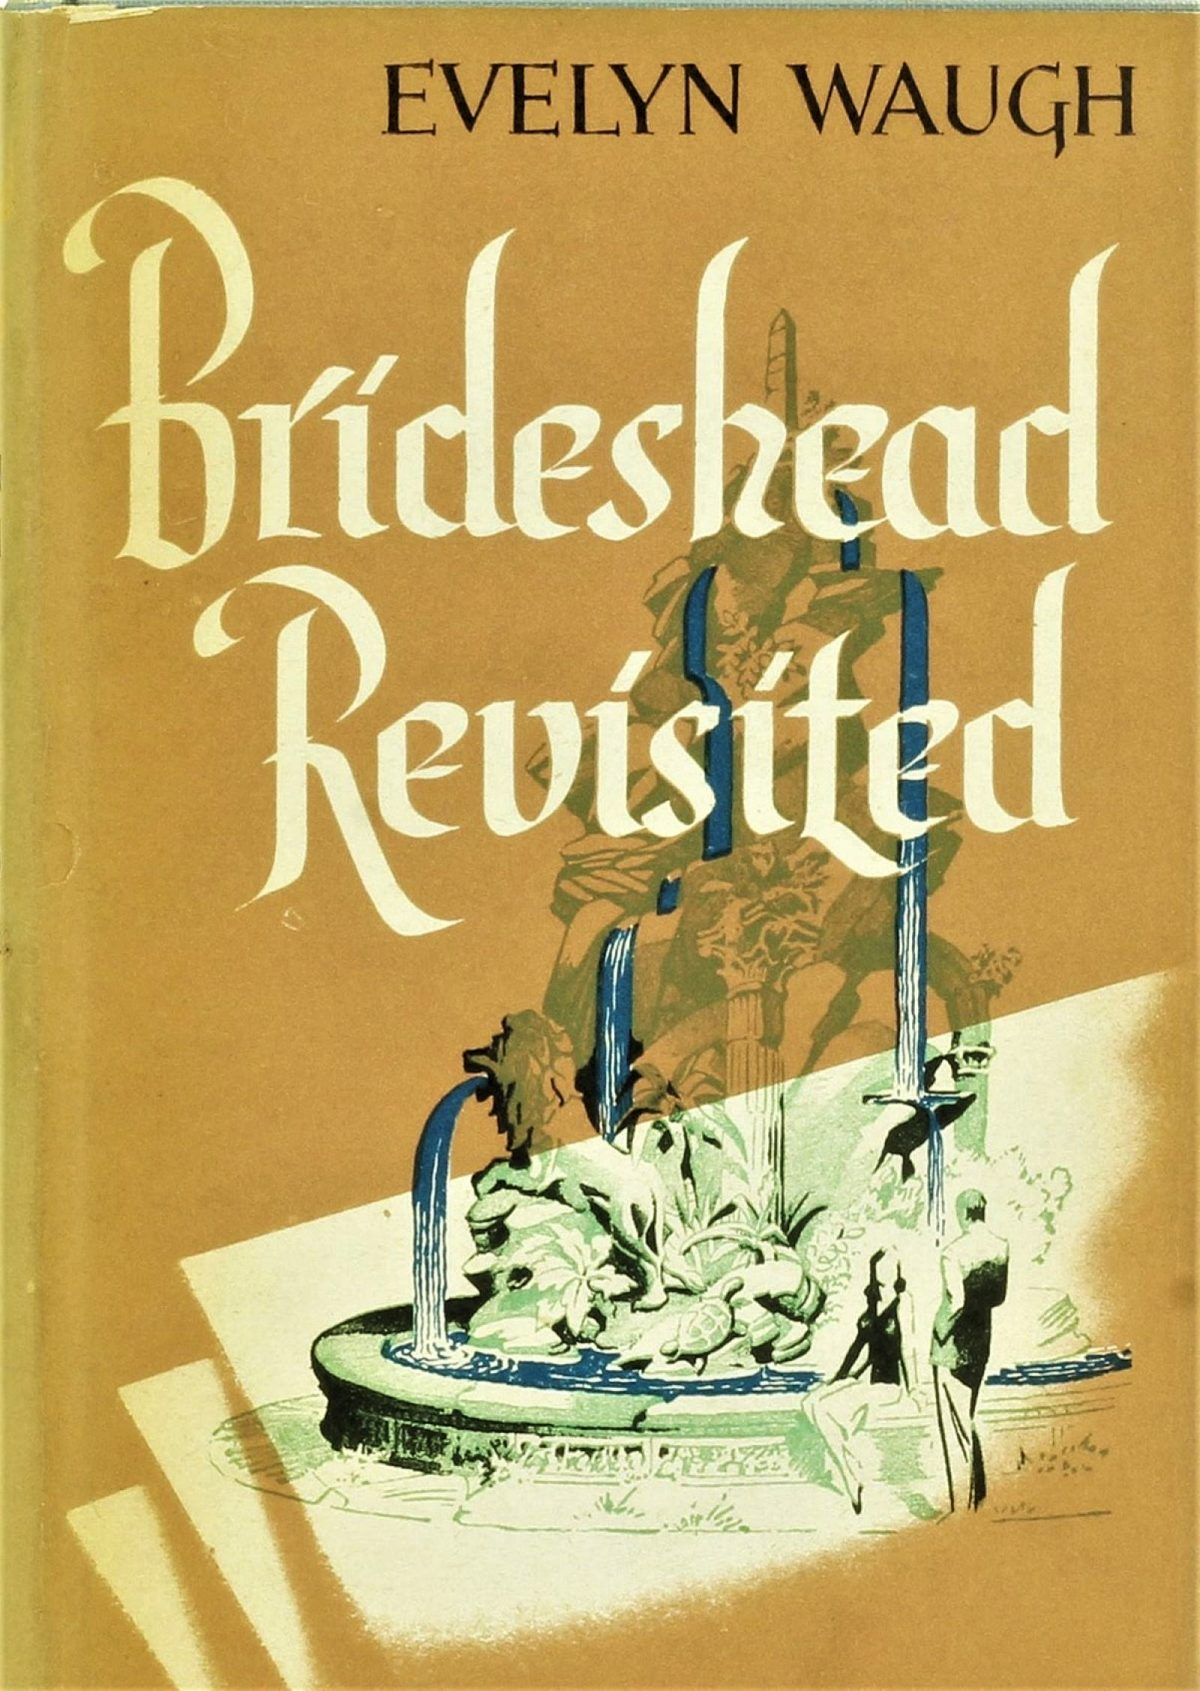 Evelyn Waugh, Brideshead Revisited, book, Duncan McLaren